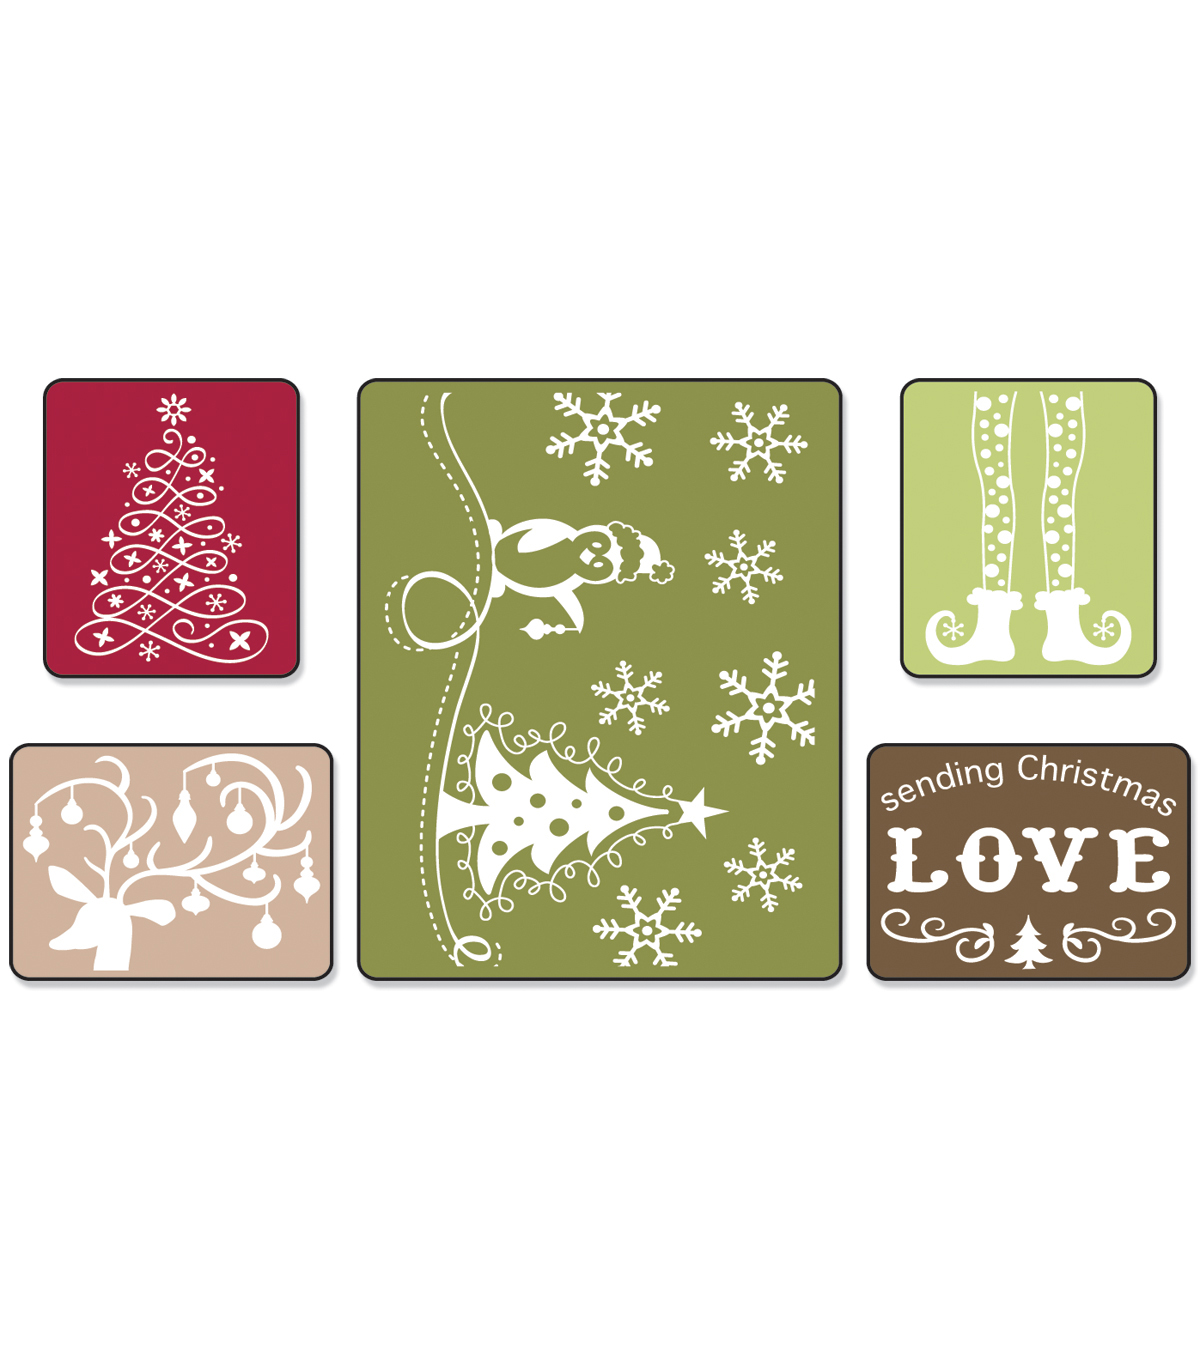 Sizzix™ Textured Impressions Emboss Folder-Sending Christmas Love